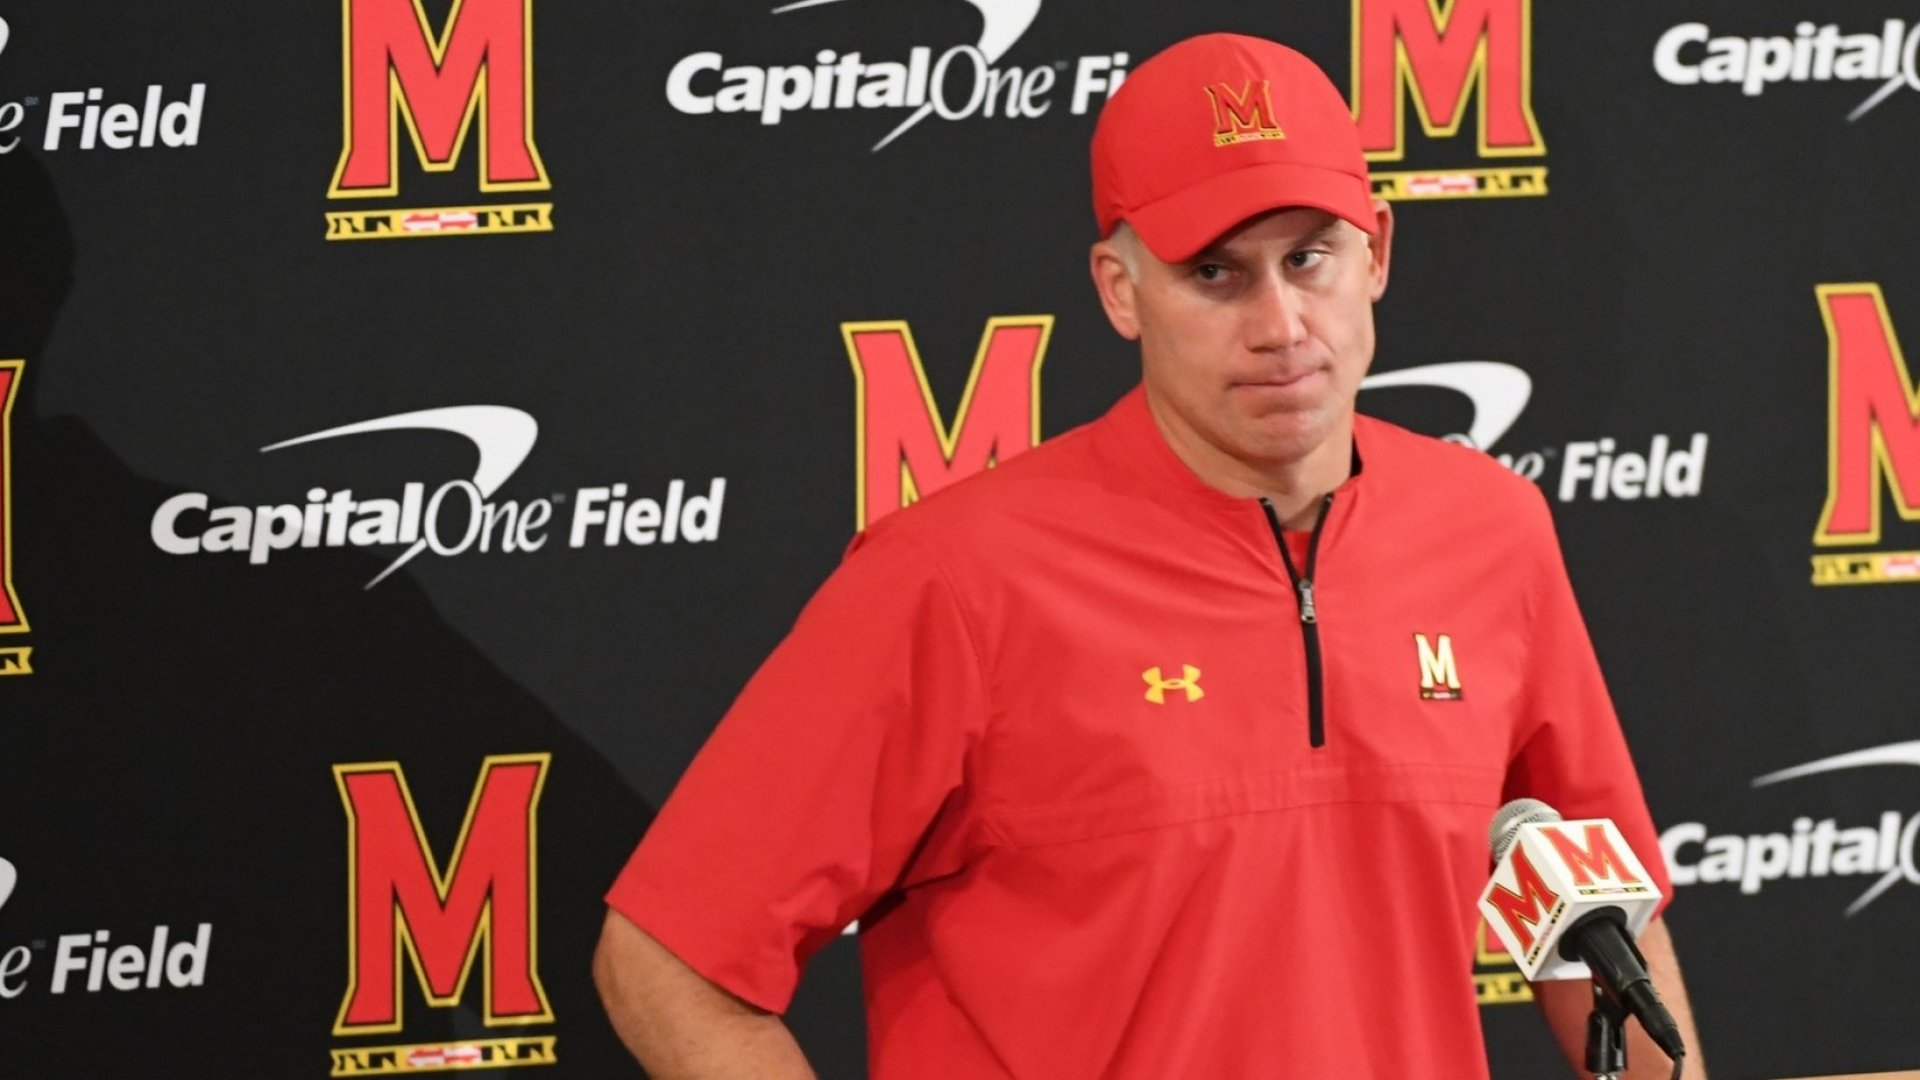 Maryland Football Just Showed Leaders What Not to Do When Dealing With a Toxic Employee